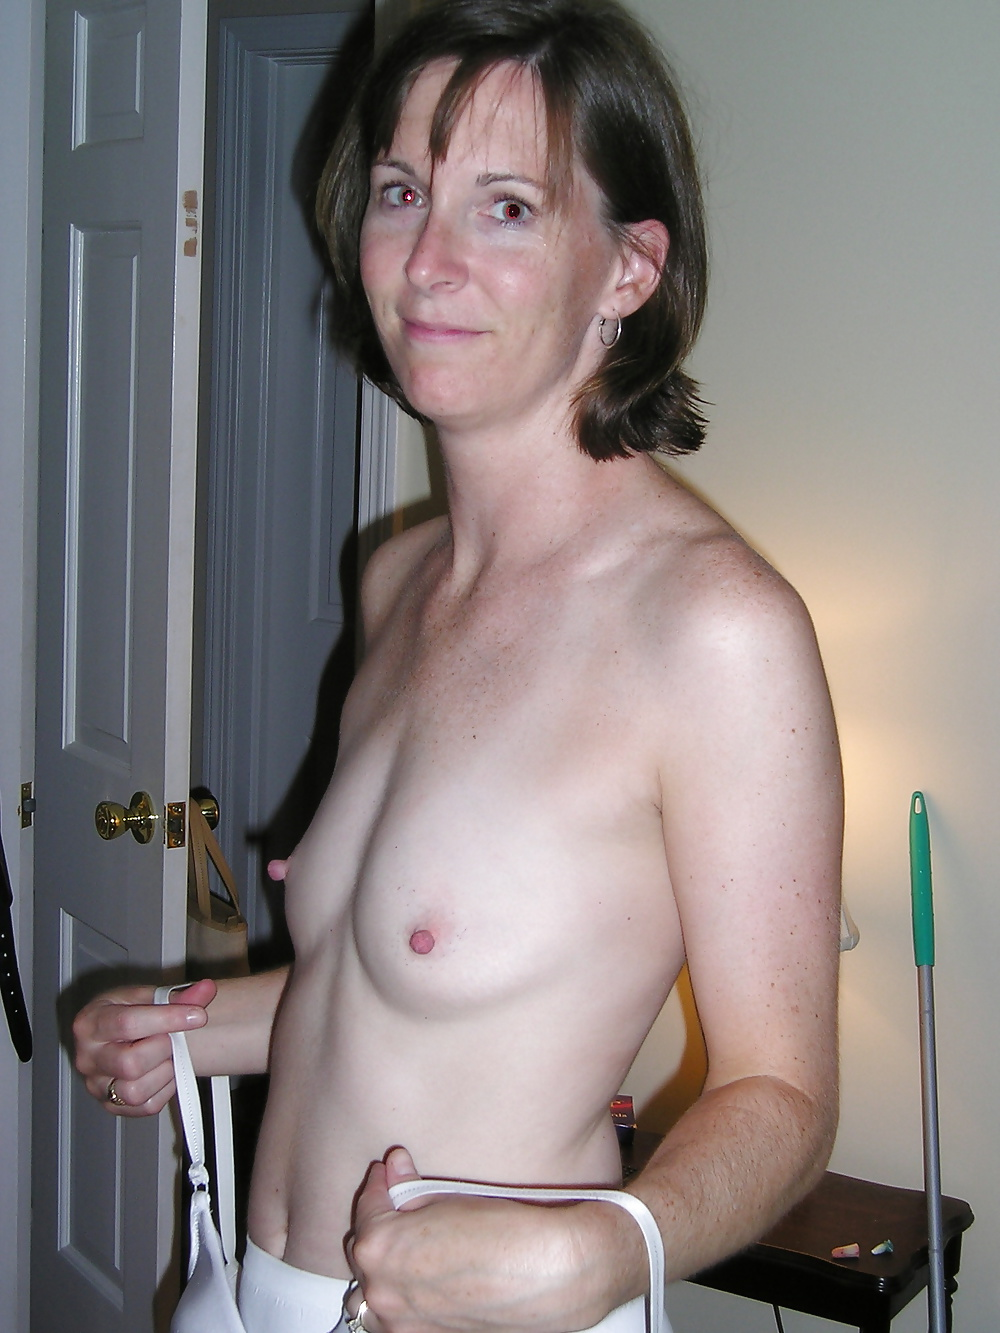 Milfs With Small Tits Pics